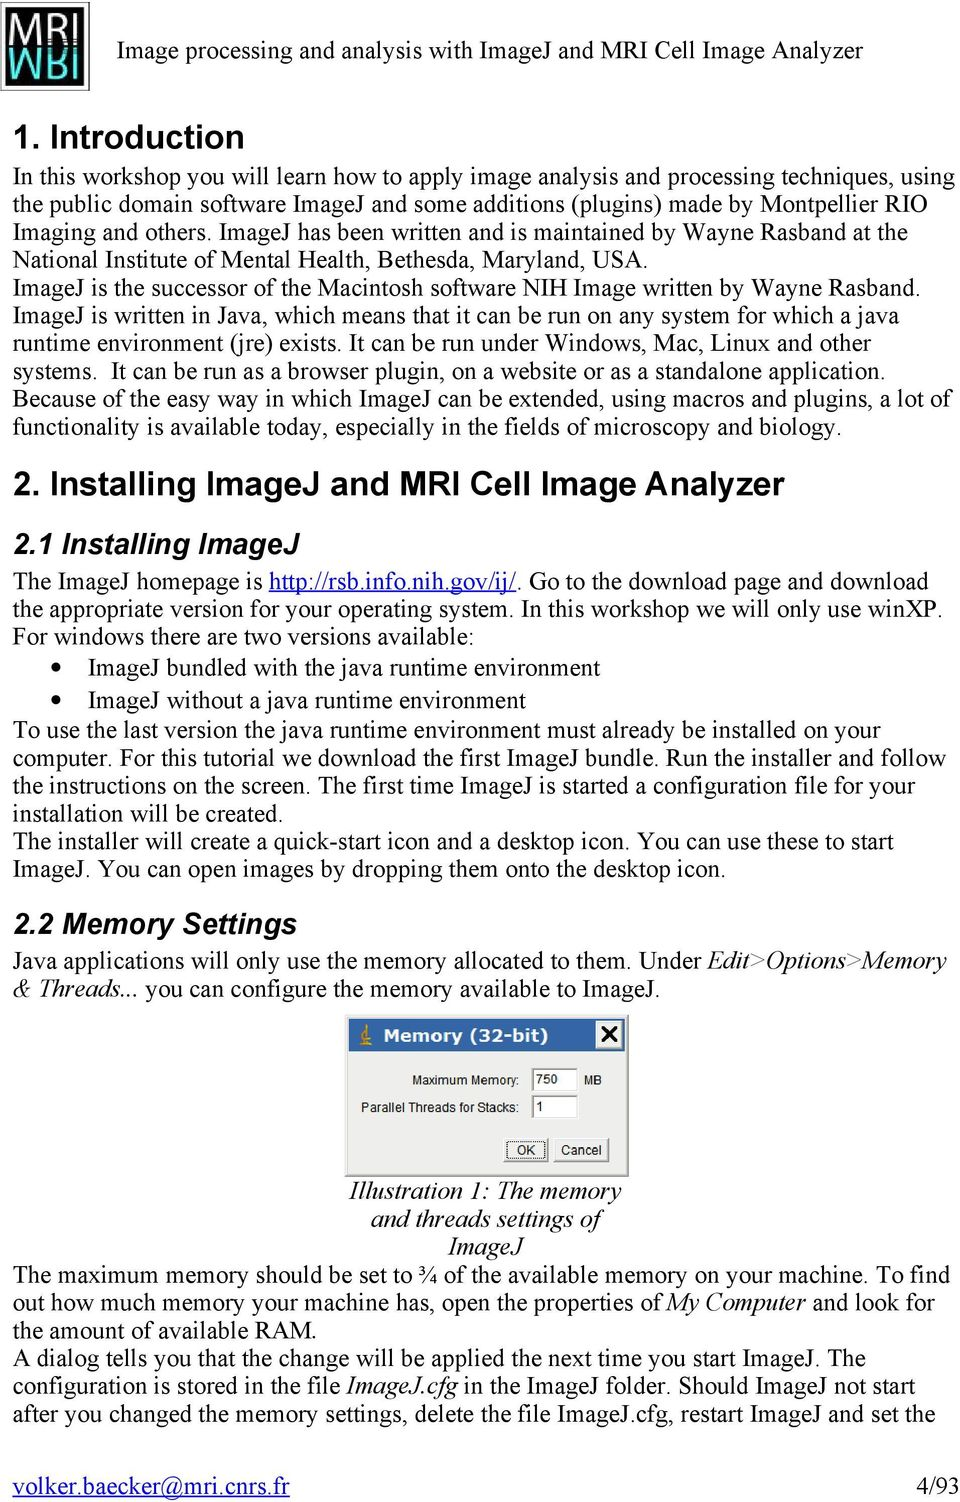 Workshop: Image processing and analysis with ImageJ and MRI Cell